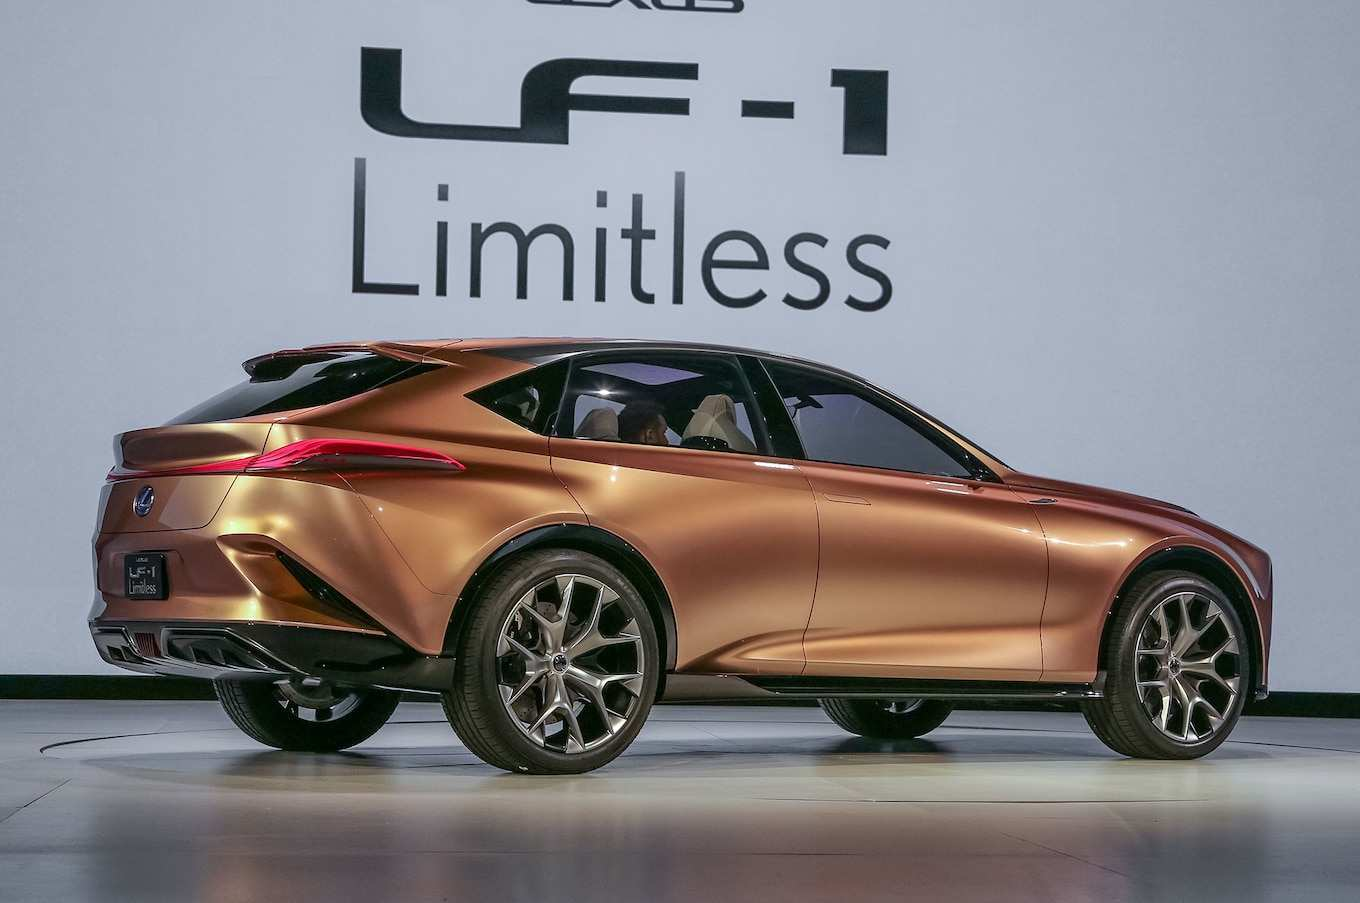 23 All New 2020 Lexus Lf1 New Review with 2020 Lexus Lf1